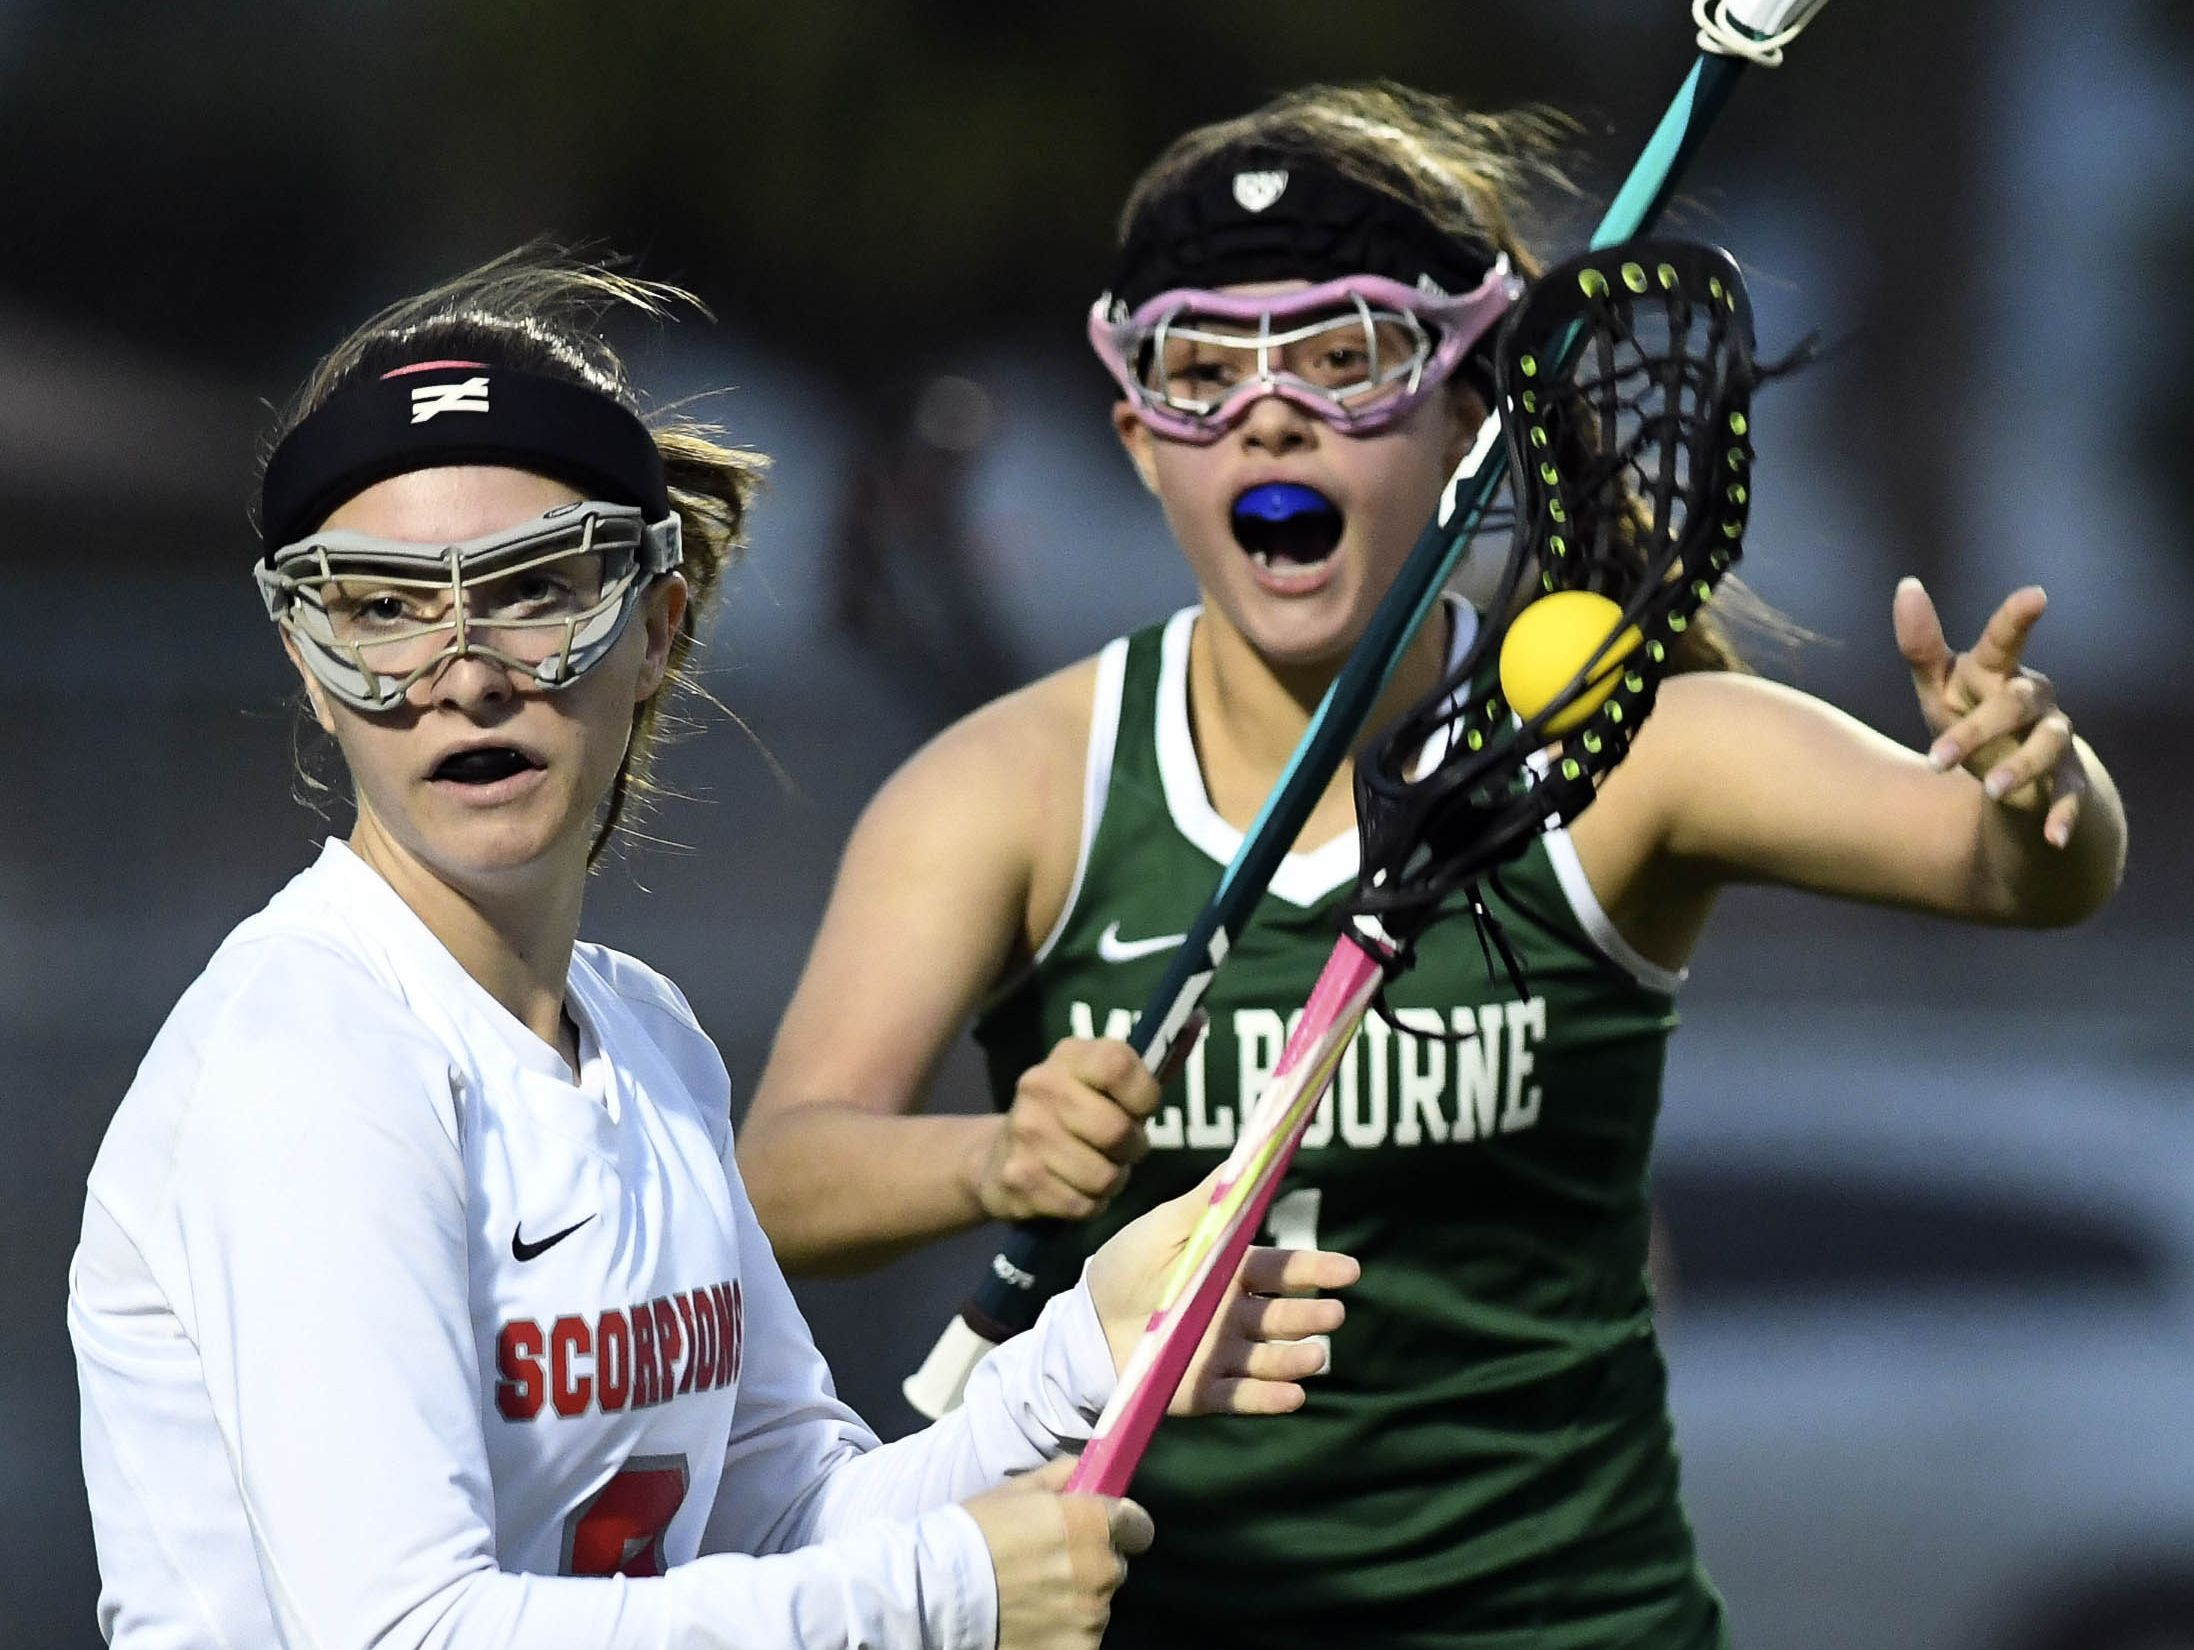 Melbourne's Meredith Markos chases Jasmine Rogell of Satellite during Thursday's games.